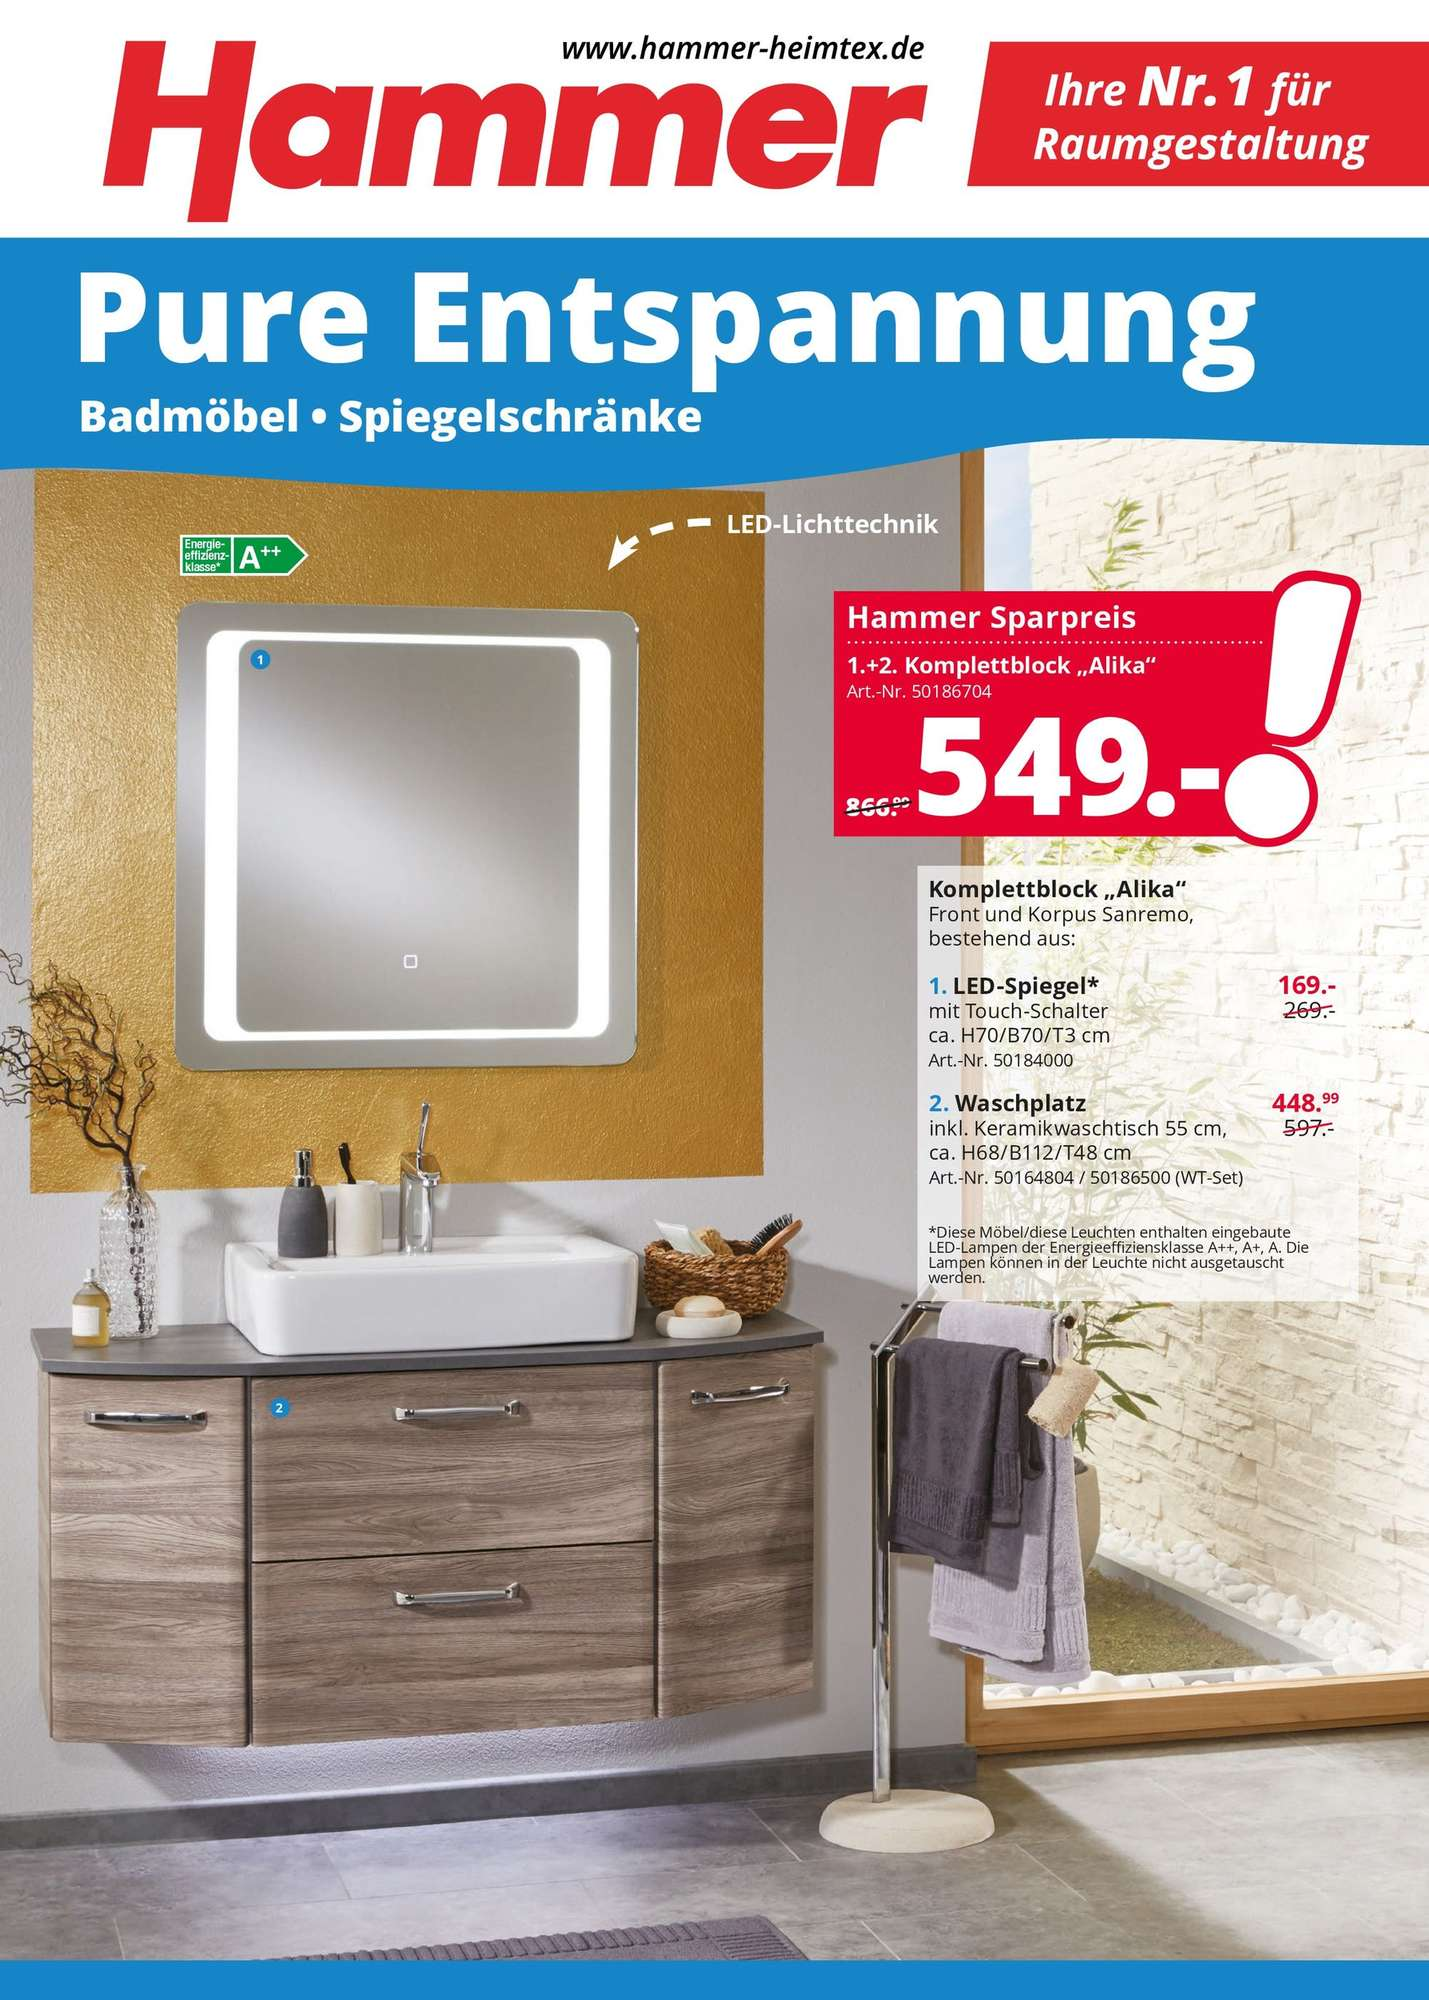 Hammer Pure Entspannung 16062017 22072017